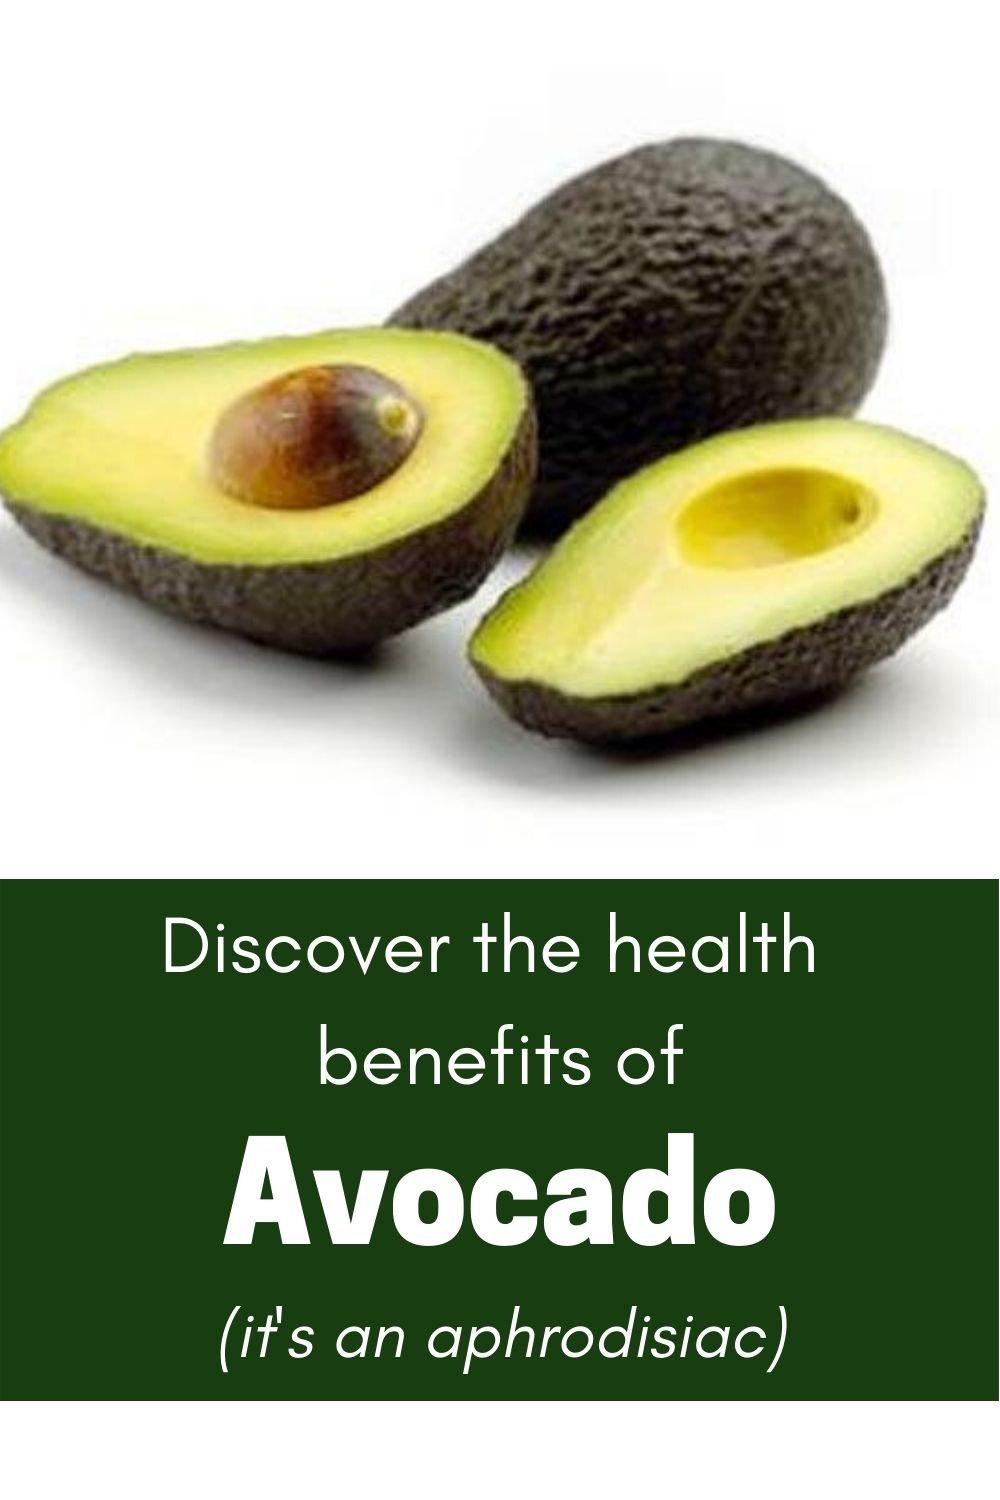 Avocado - health benefits and aphrodisiac effects